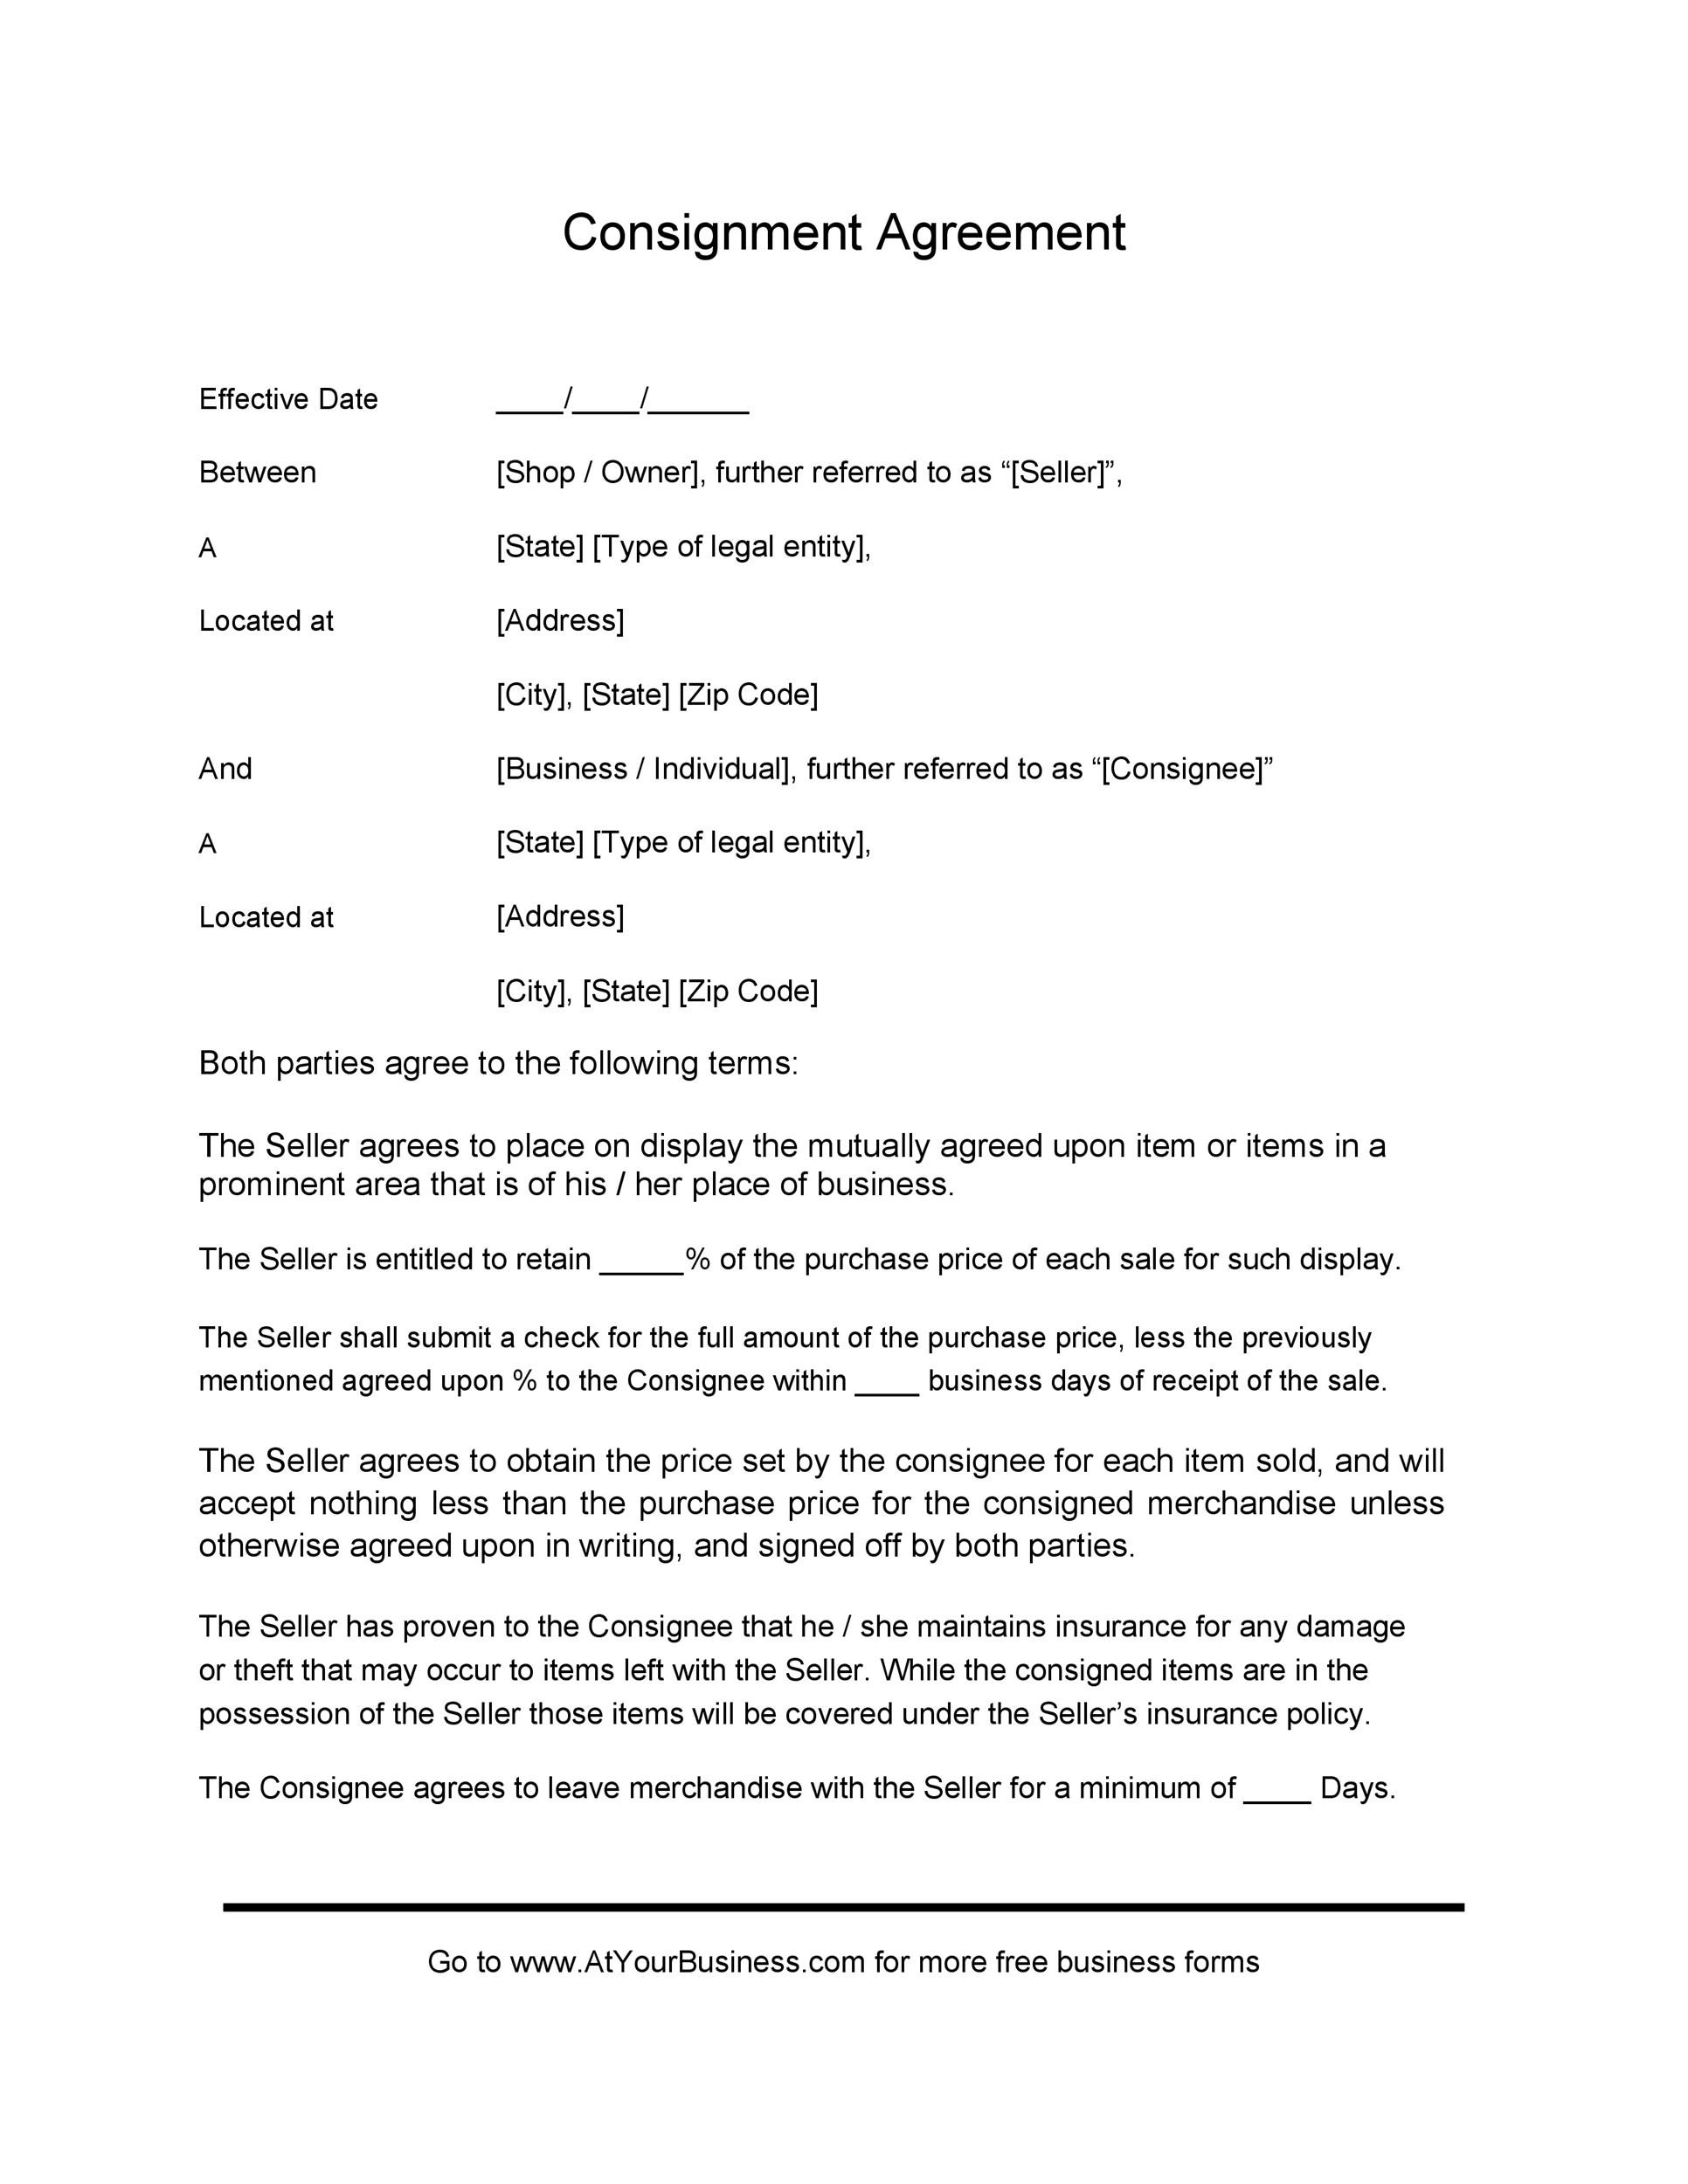 Free Consignment Agreement Template 08